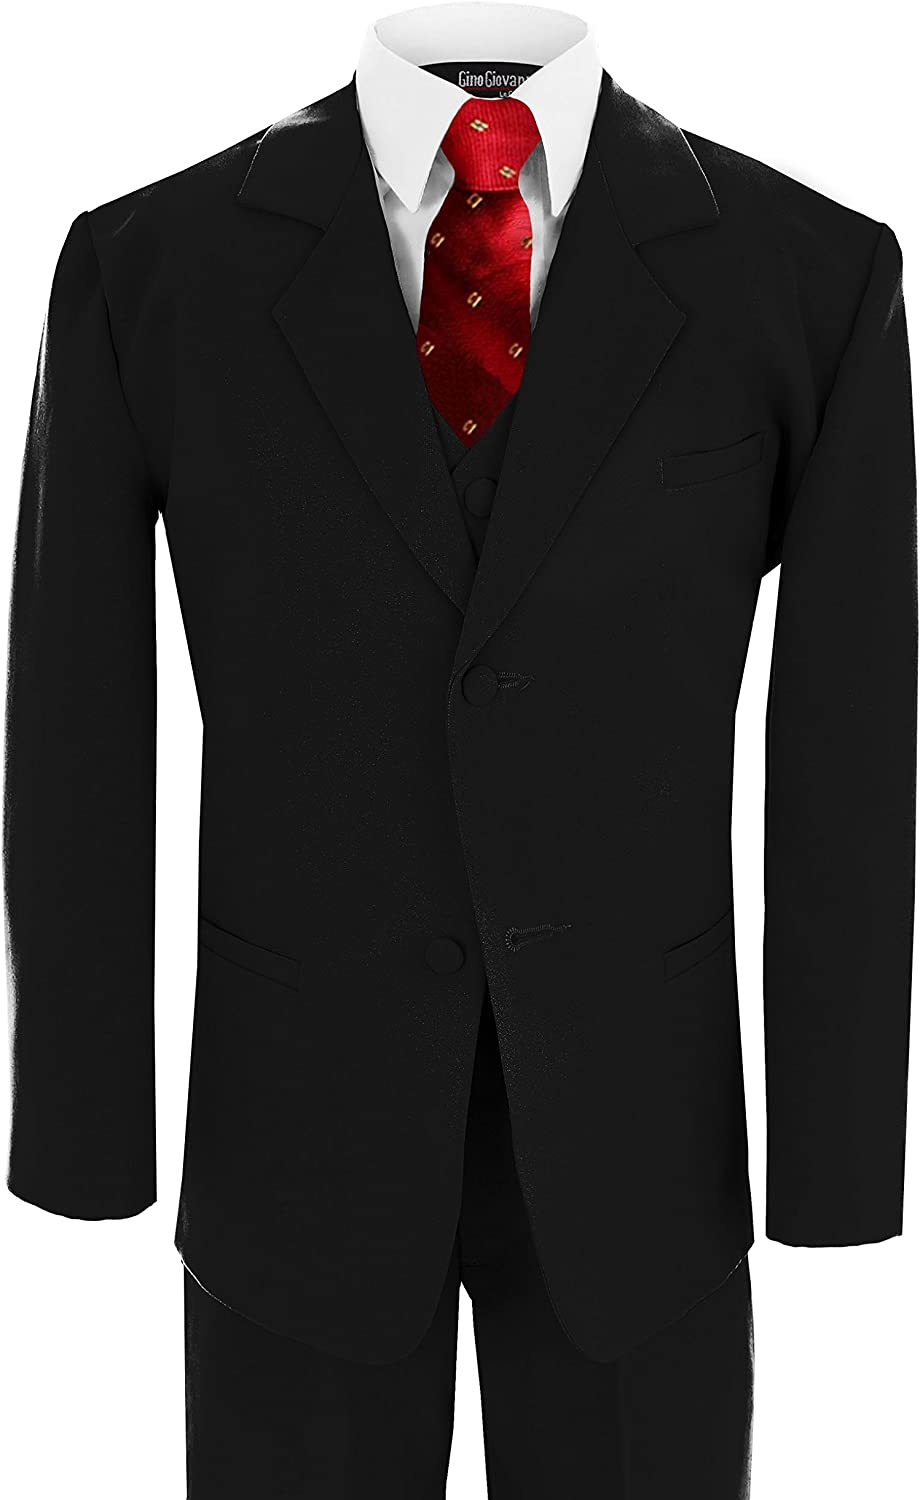 Gino Giovanni Wedding Formal Boy Black Suit with Red Tie Sizes Baby to Teen